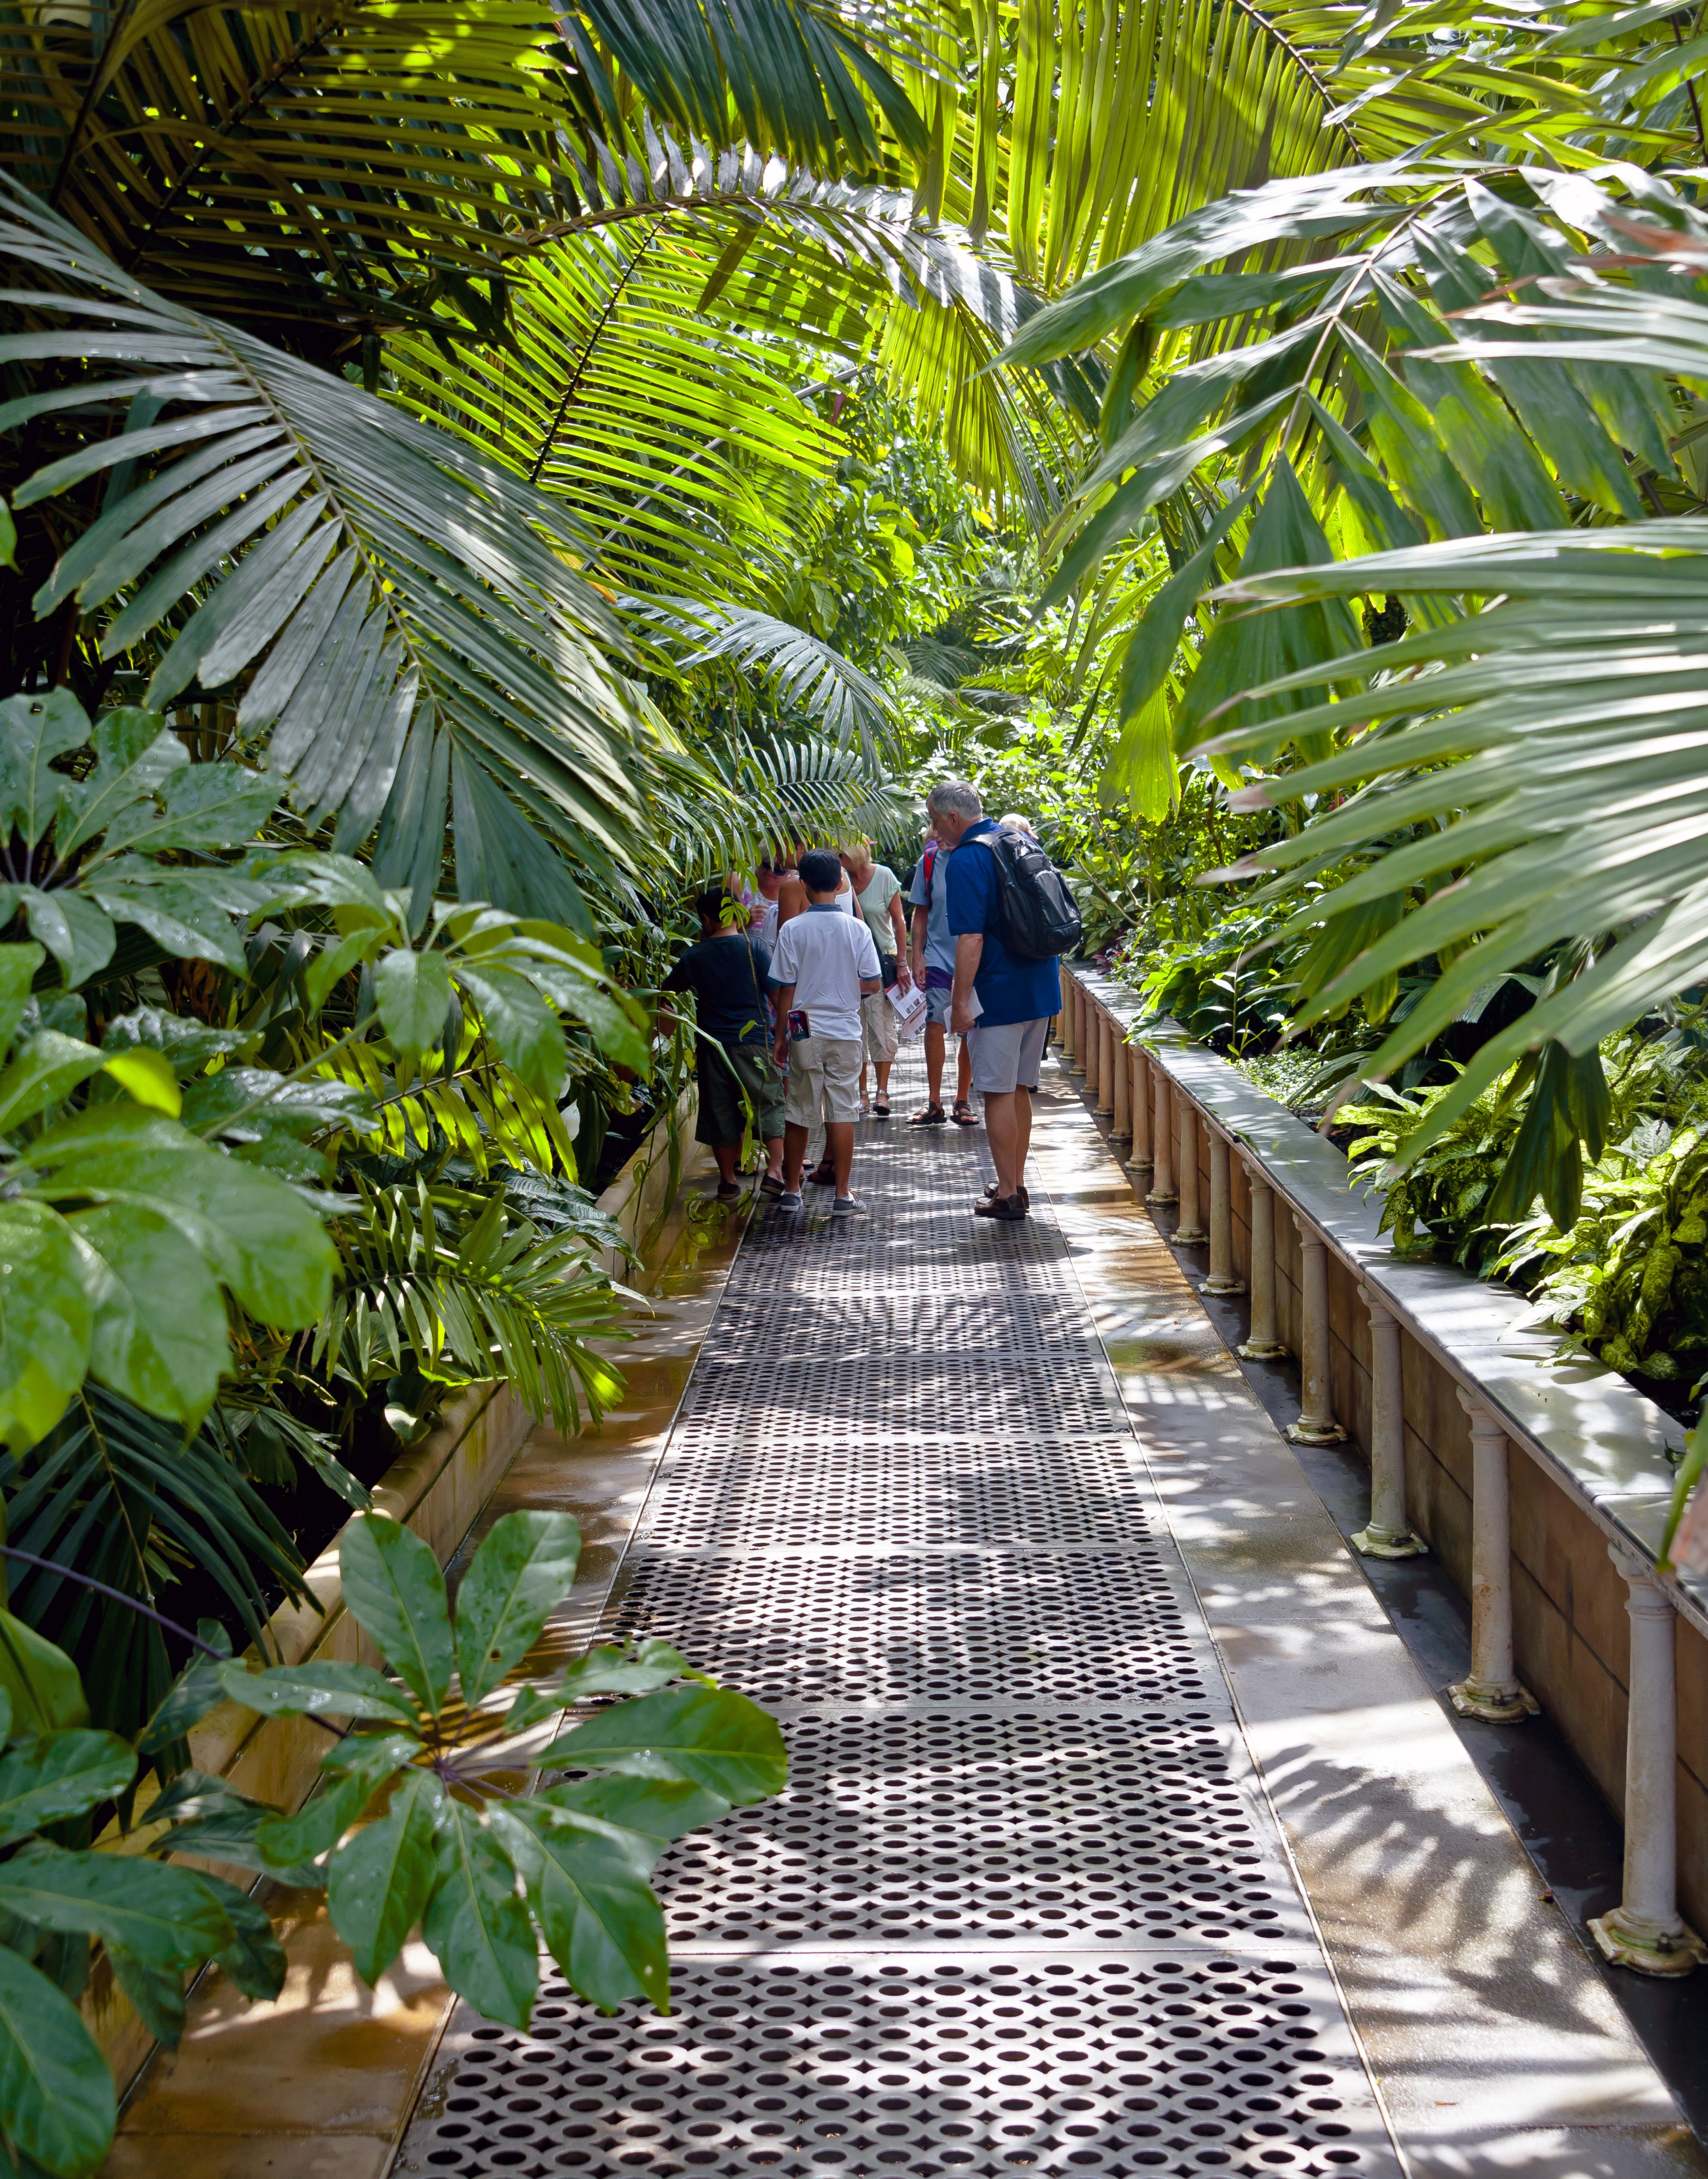 Walkway through palms in Palm House, Kew Gardens